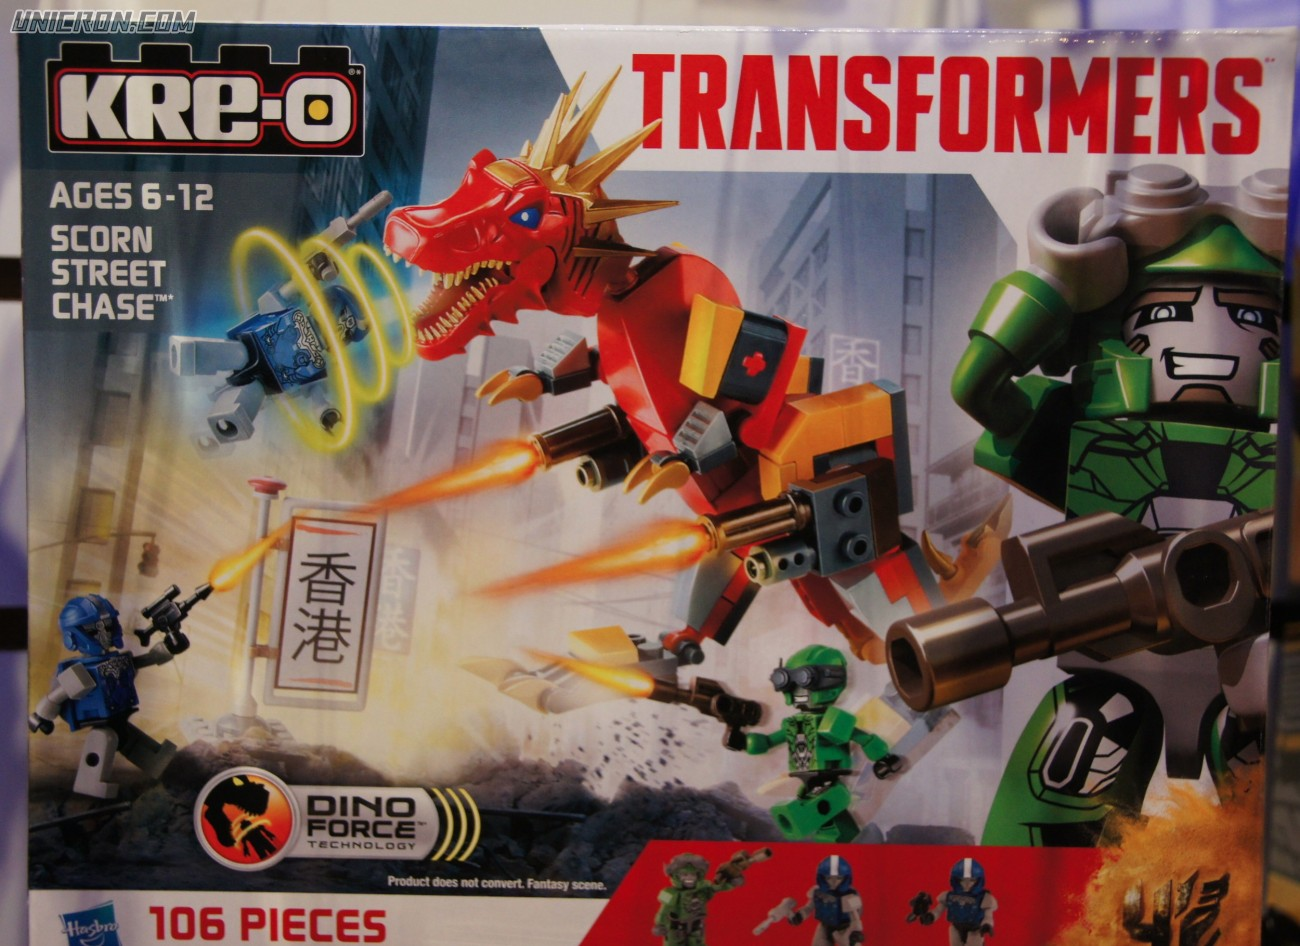 Transformers Kre-O Scorn Street Chase (Kre-O with Crosshairs) toy